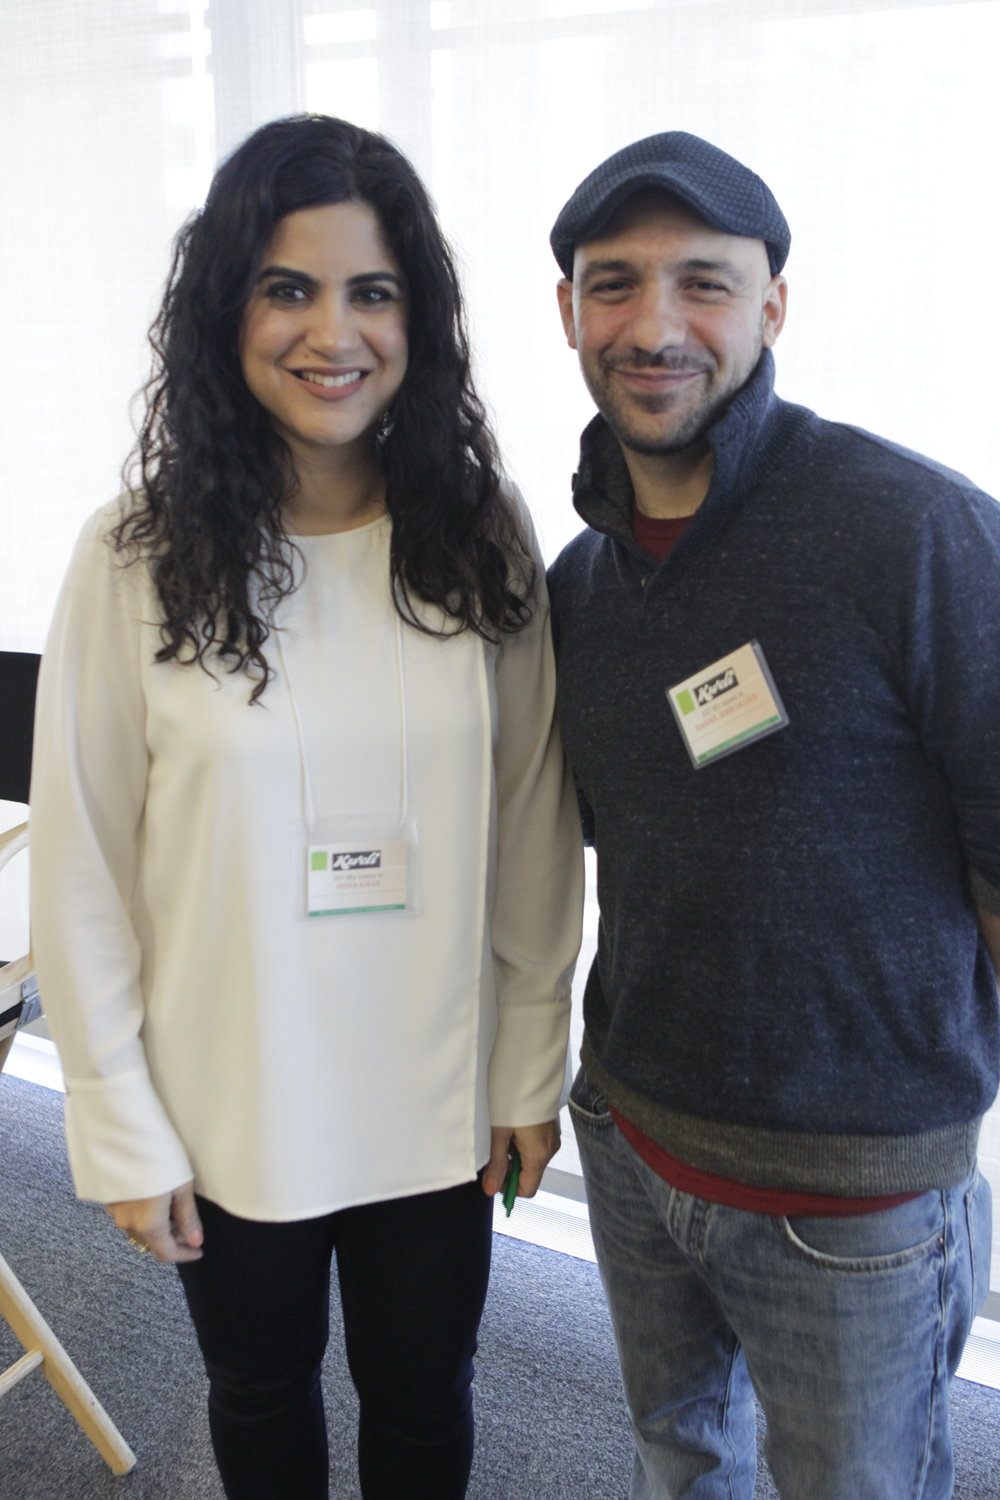 Copy of Hena Khan, author of Amina's Voice and Daniel José Older, author of Shadowshaper